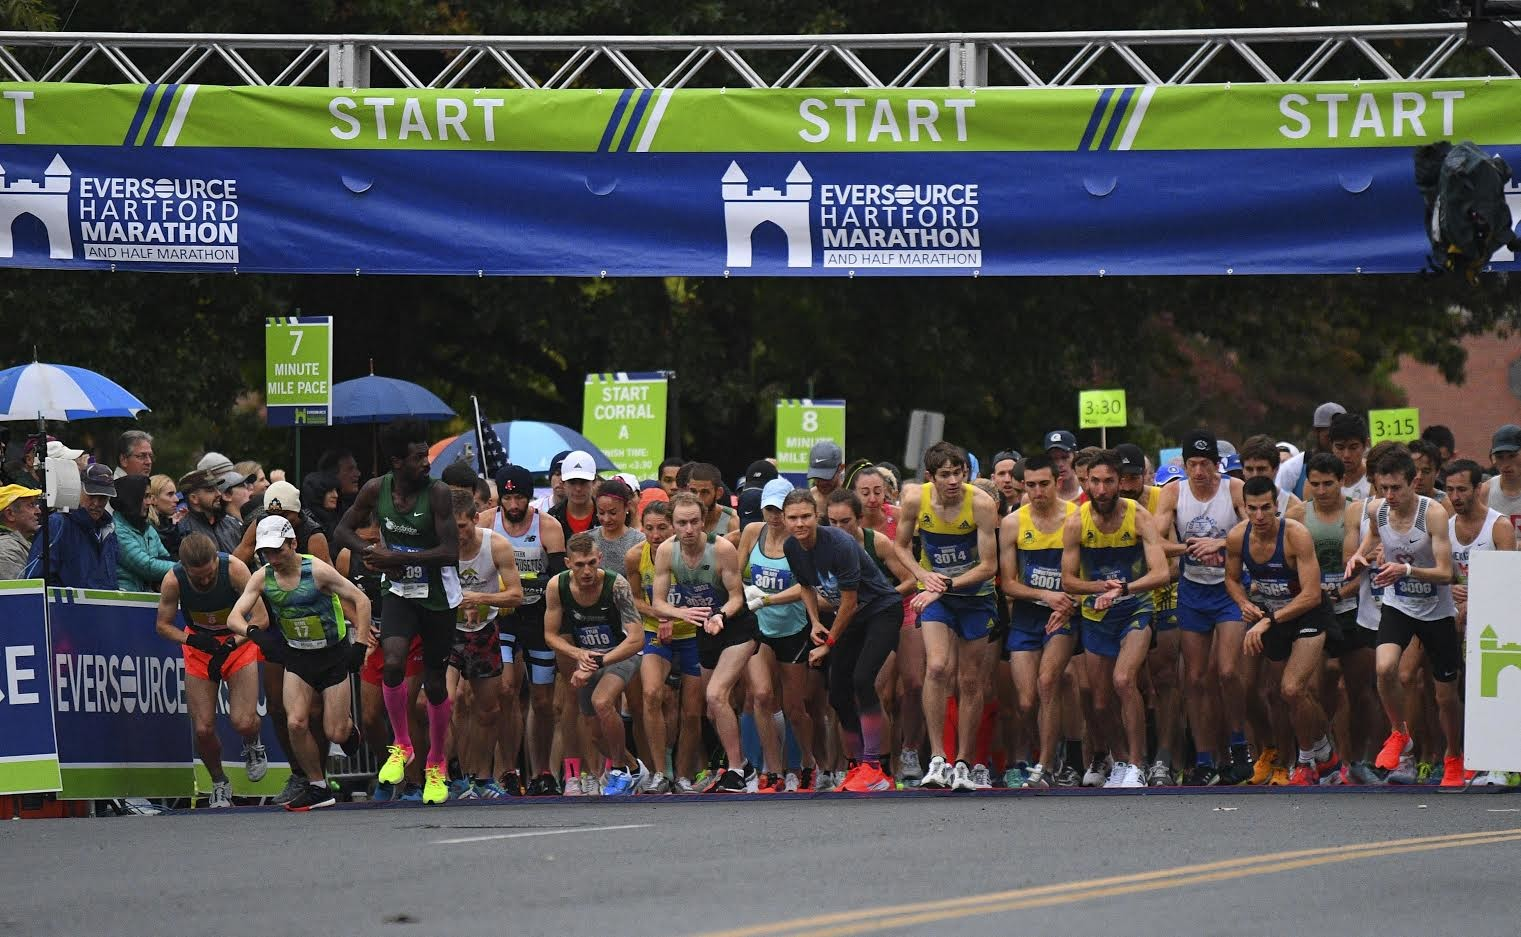 200 Eversource Hartford Marathon raised hundreds of thousands of dollars for charity at their virtual event